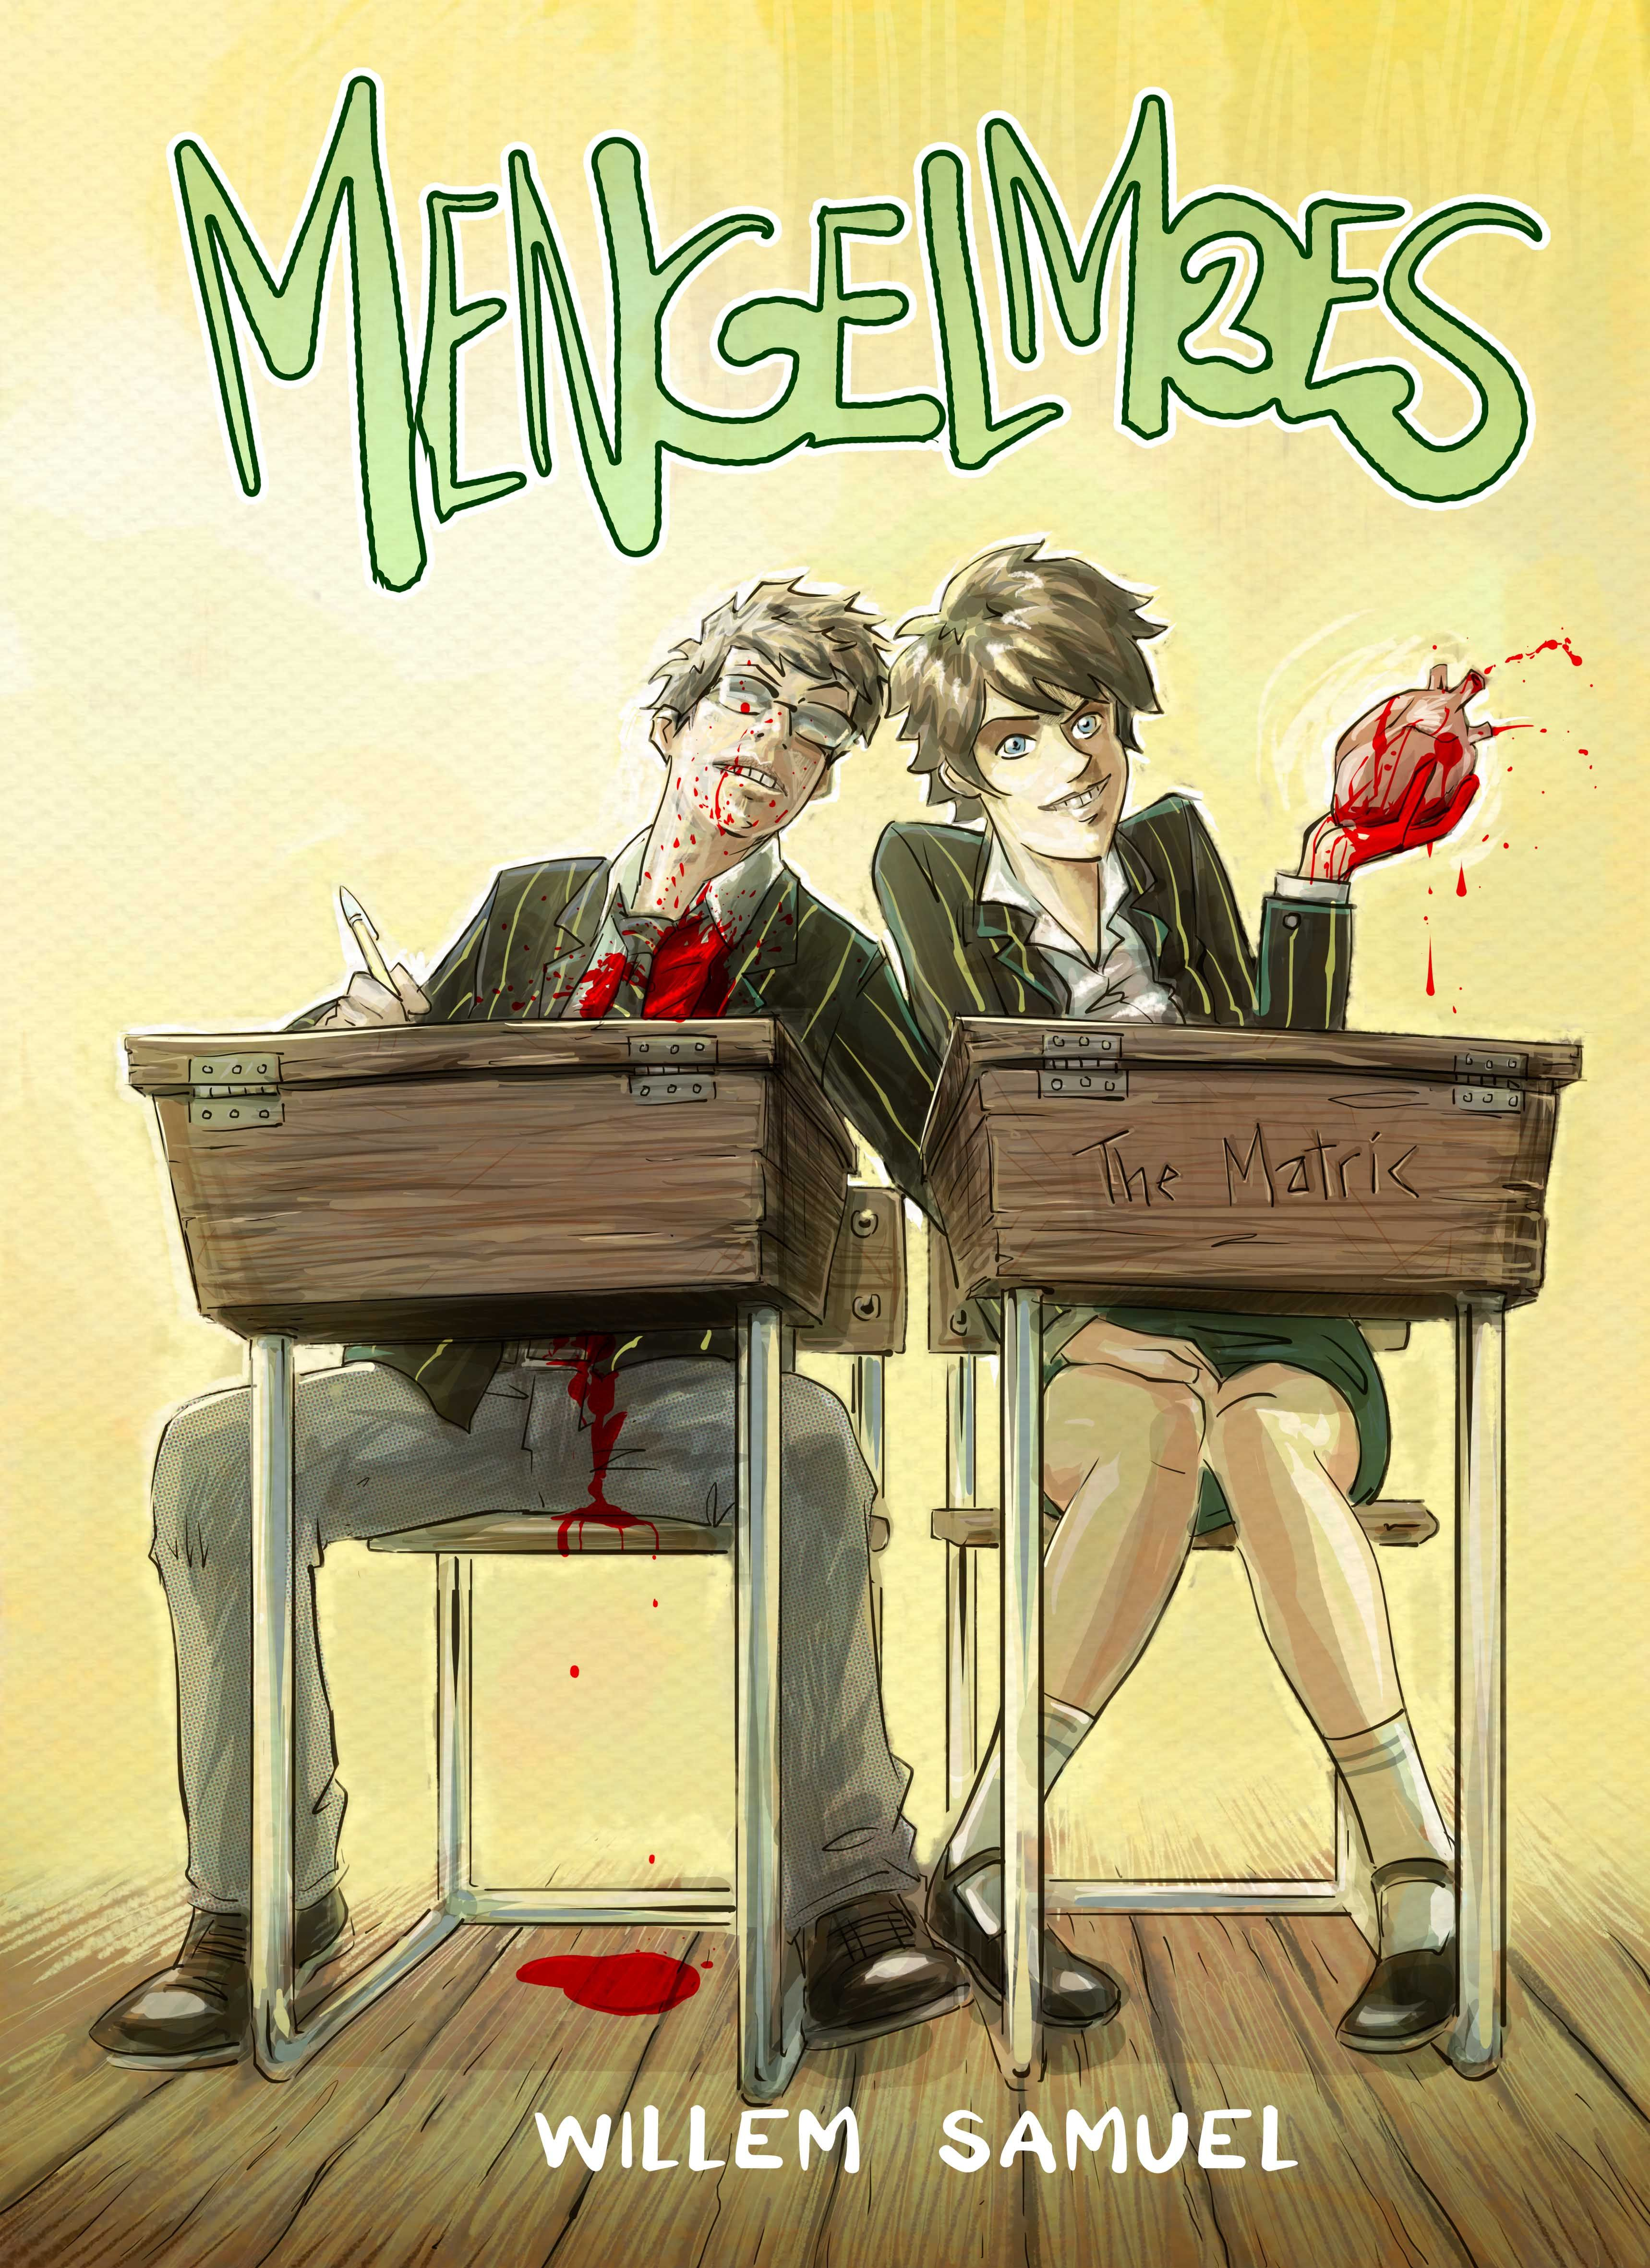 Mengelmoes 2 - The Matric by Willem Samuel